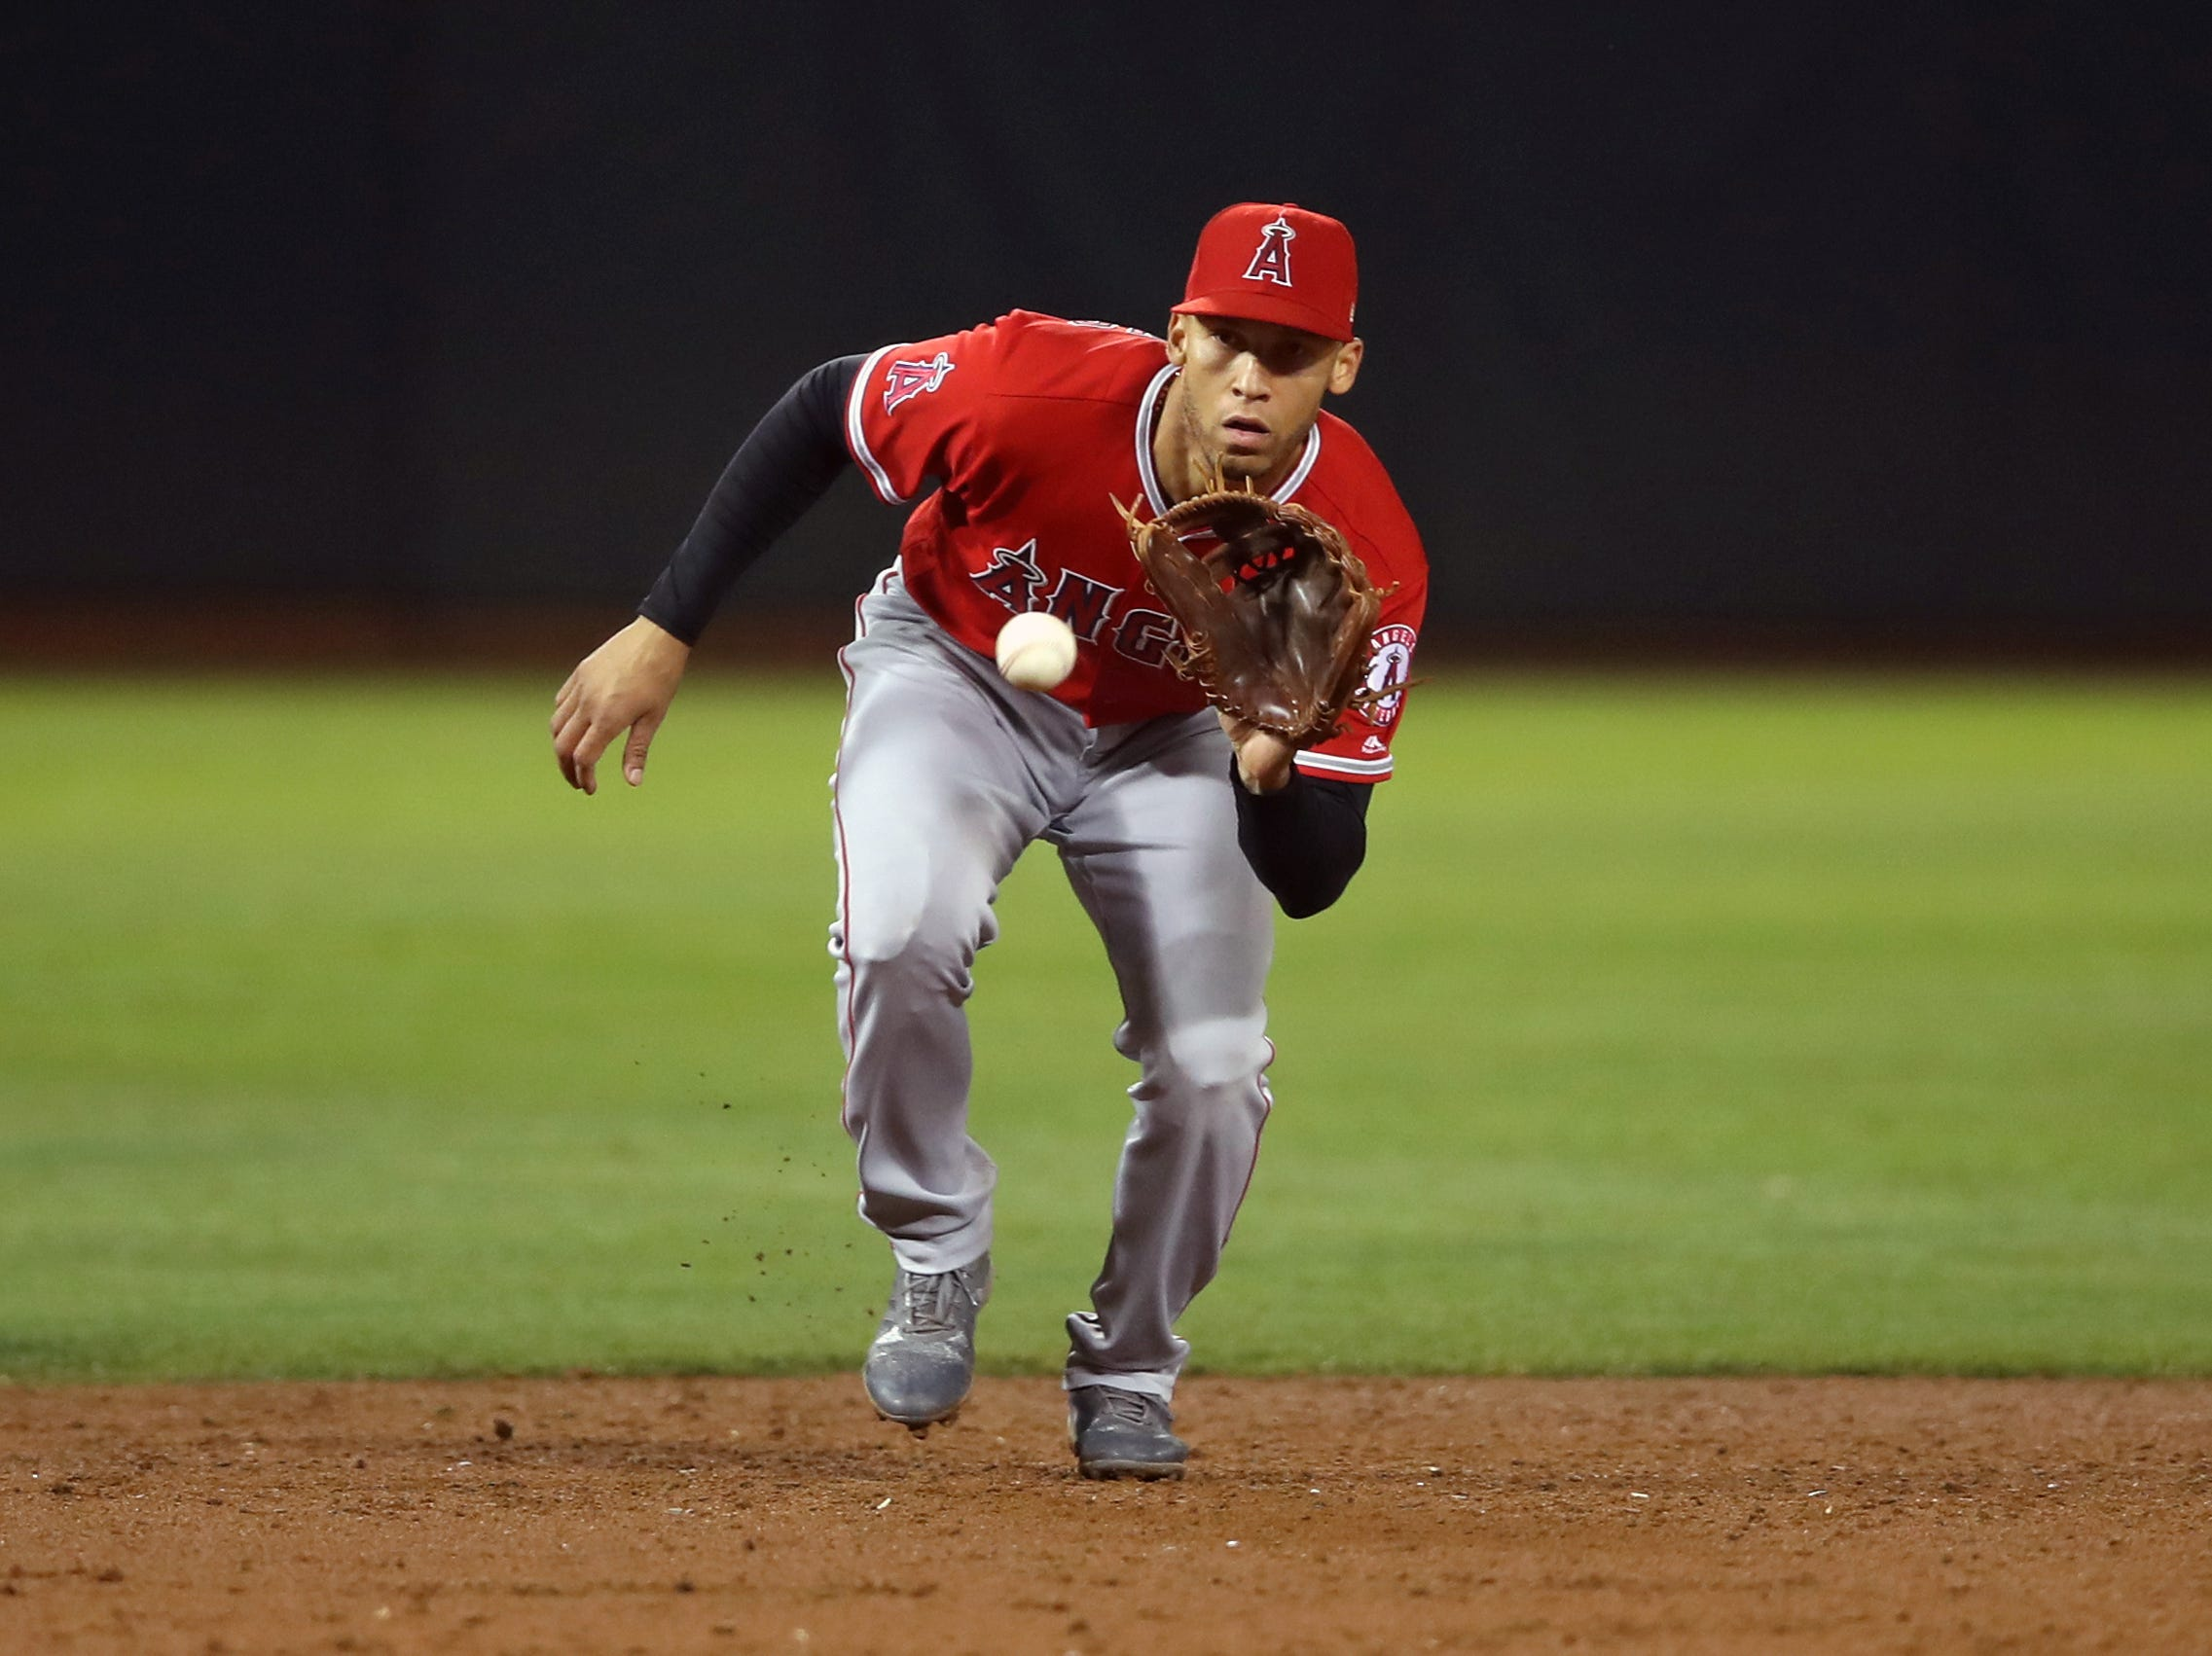 AL SS - Andrelton Simmons, Angels (fourth)